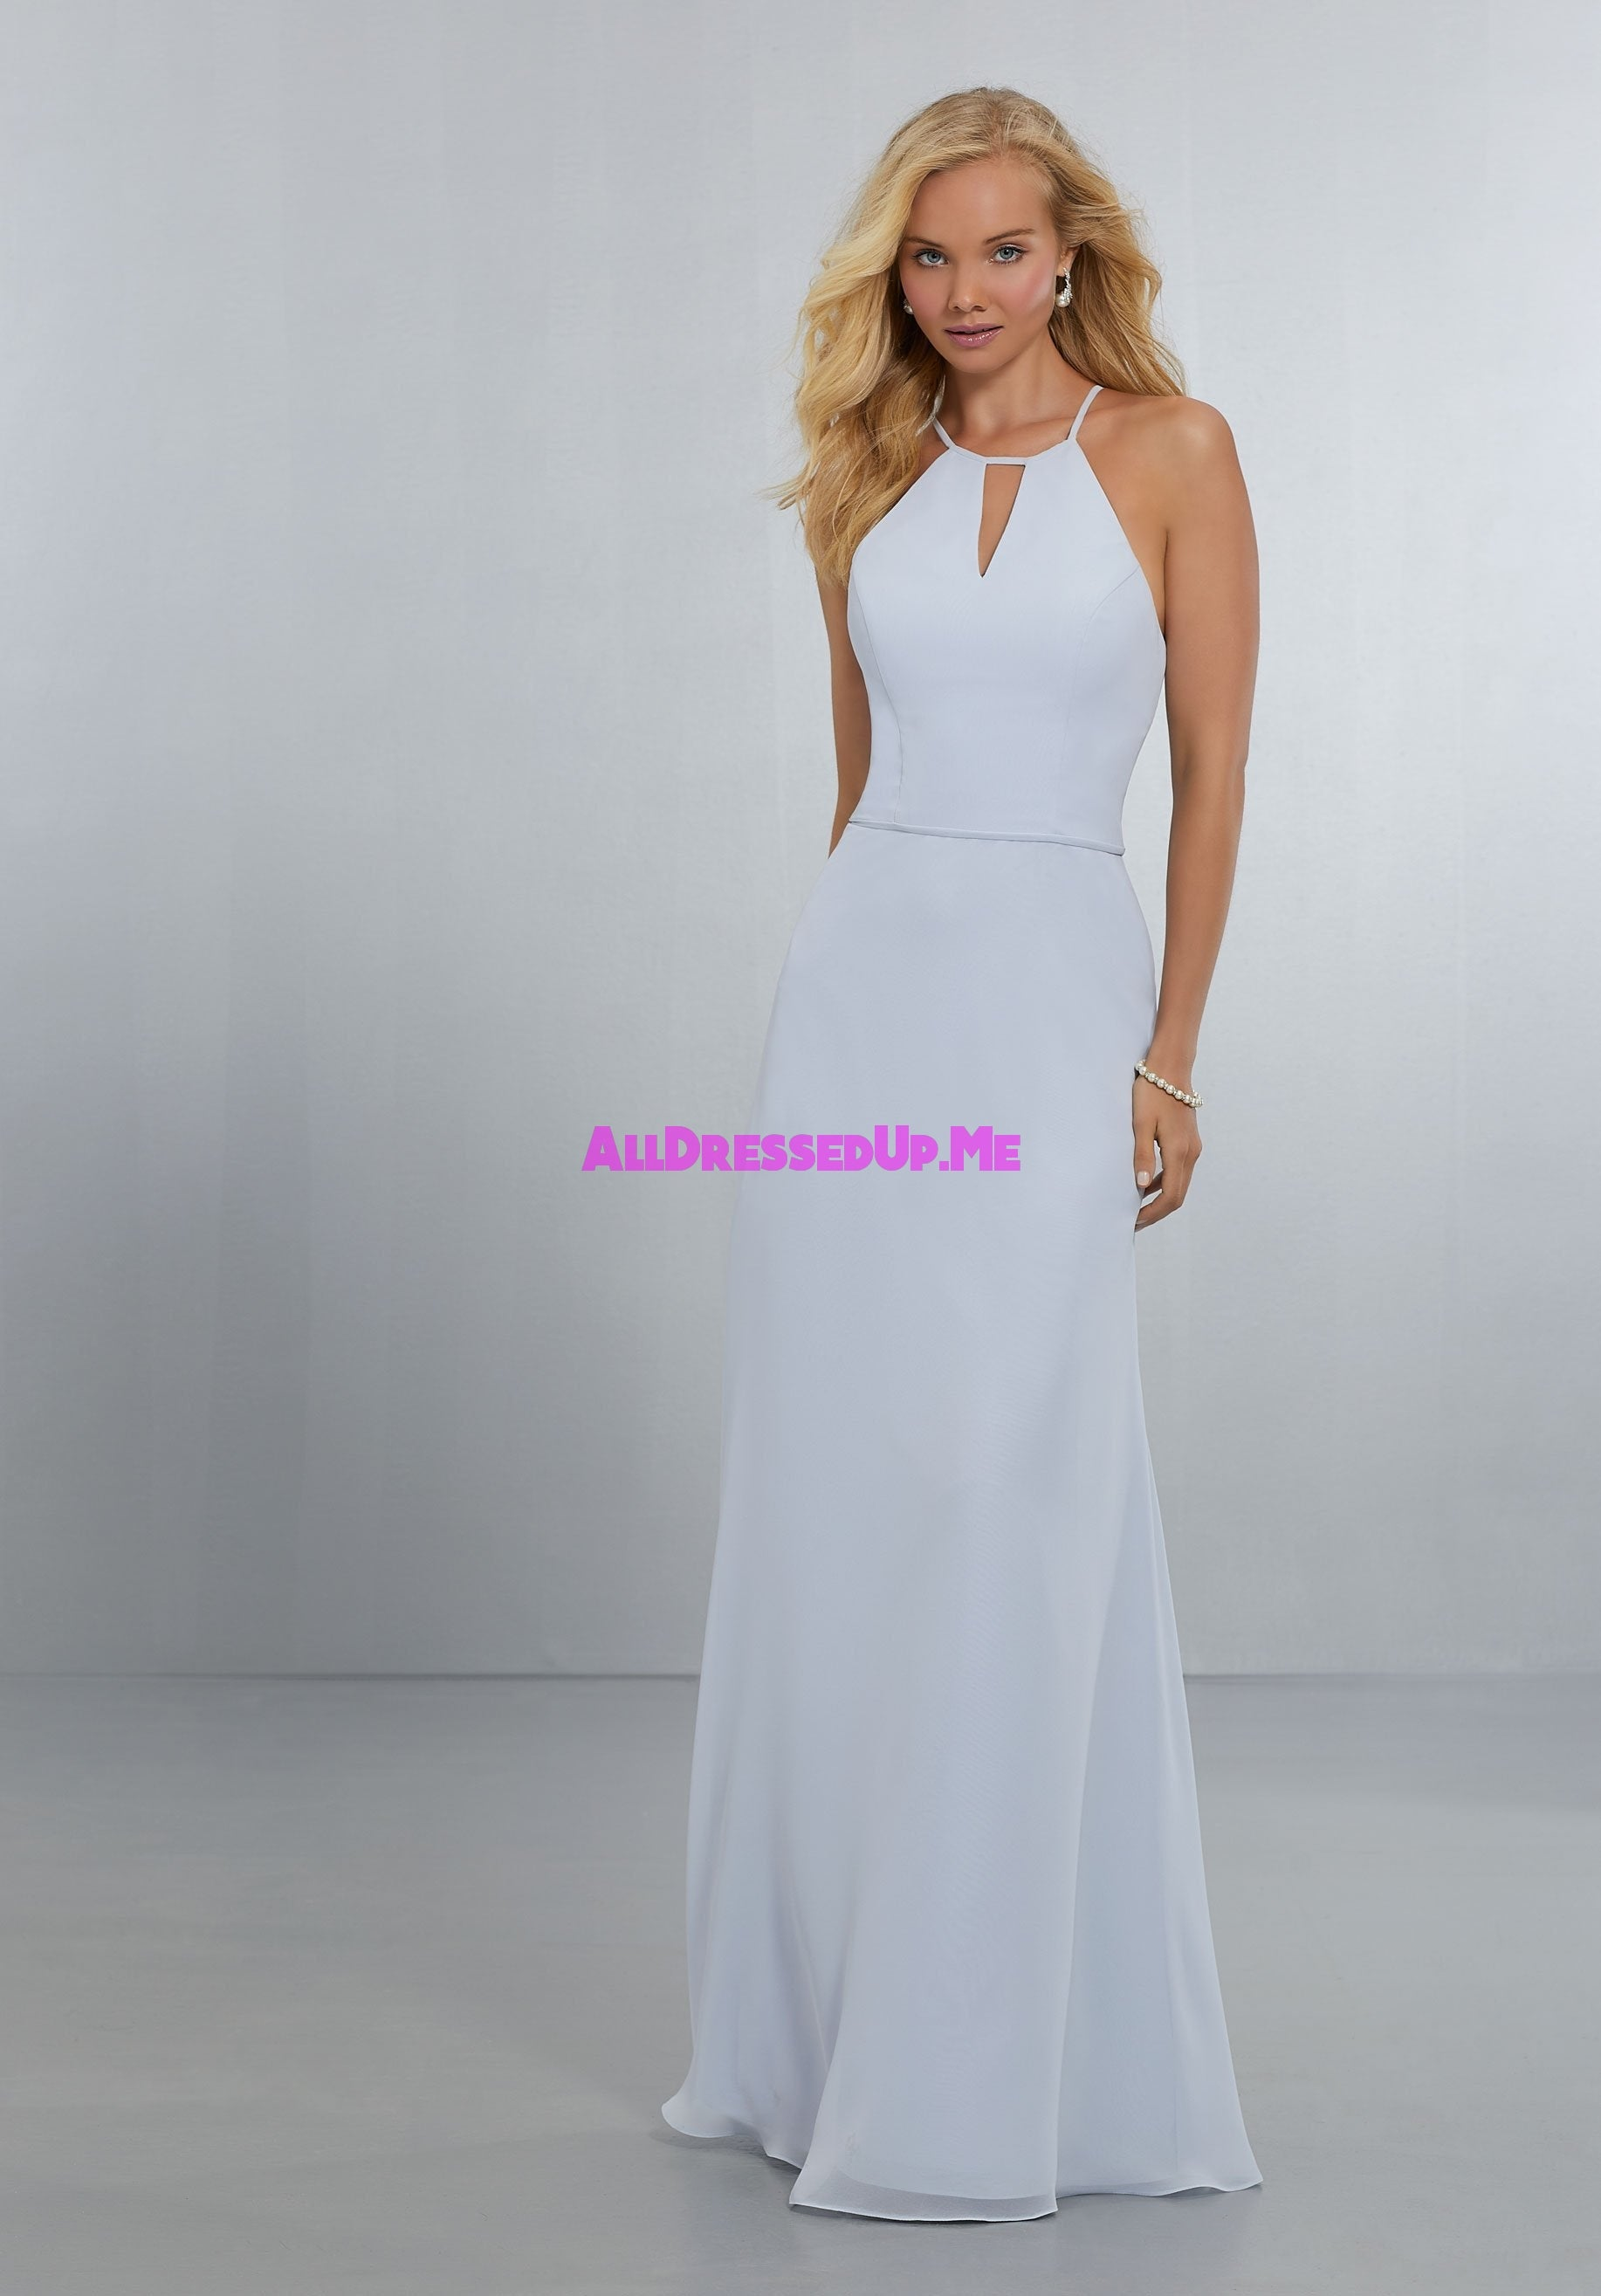 Morilee - 21563 - All Dressed Up, Bridesmaids - All Dressed Up ...